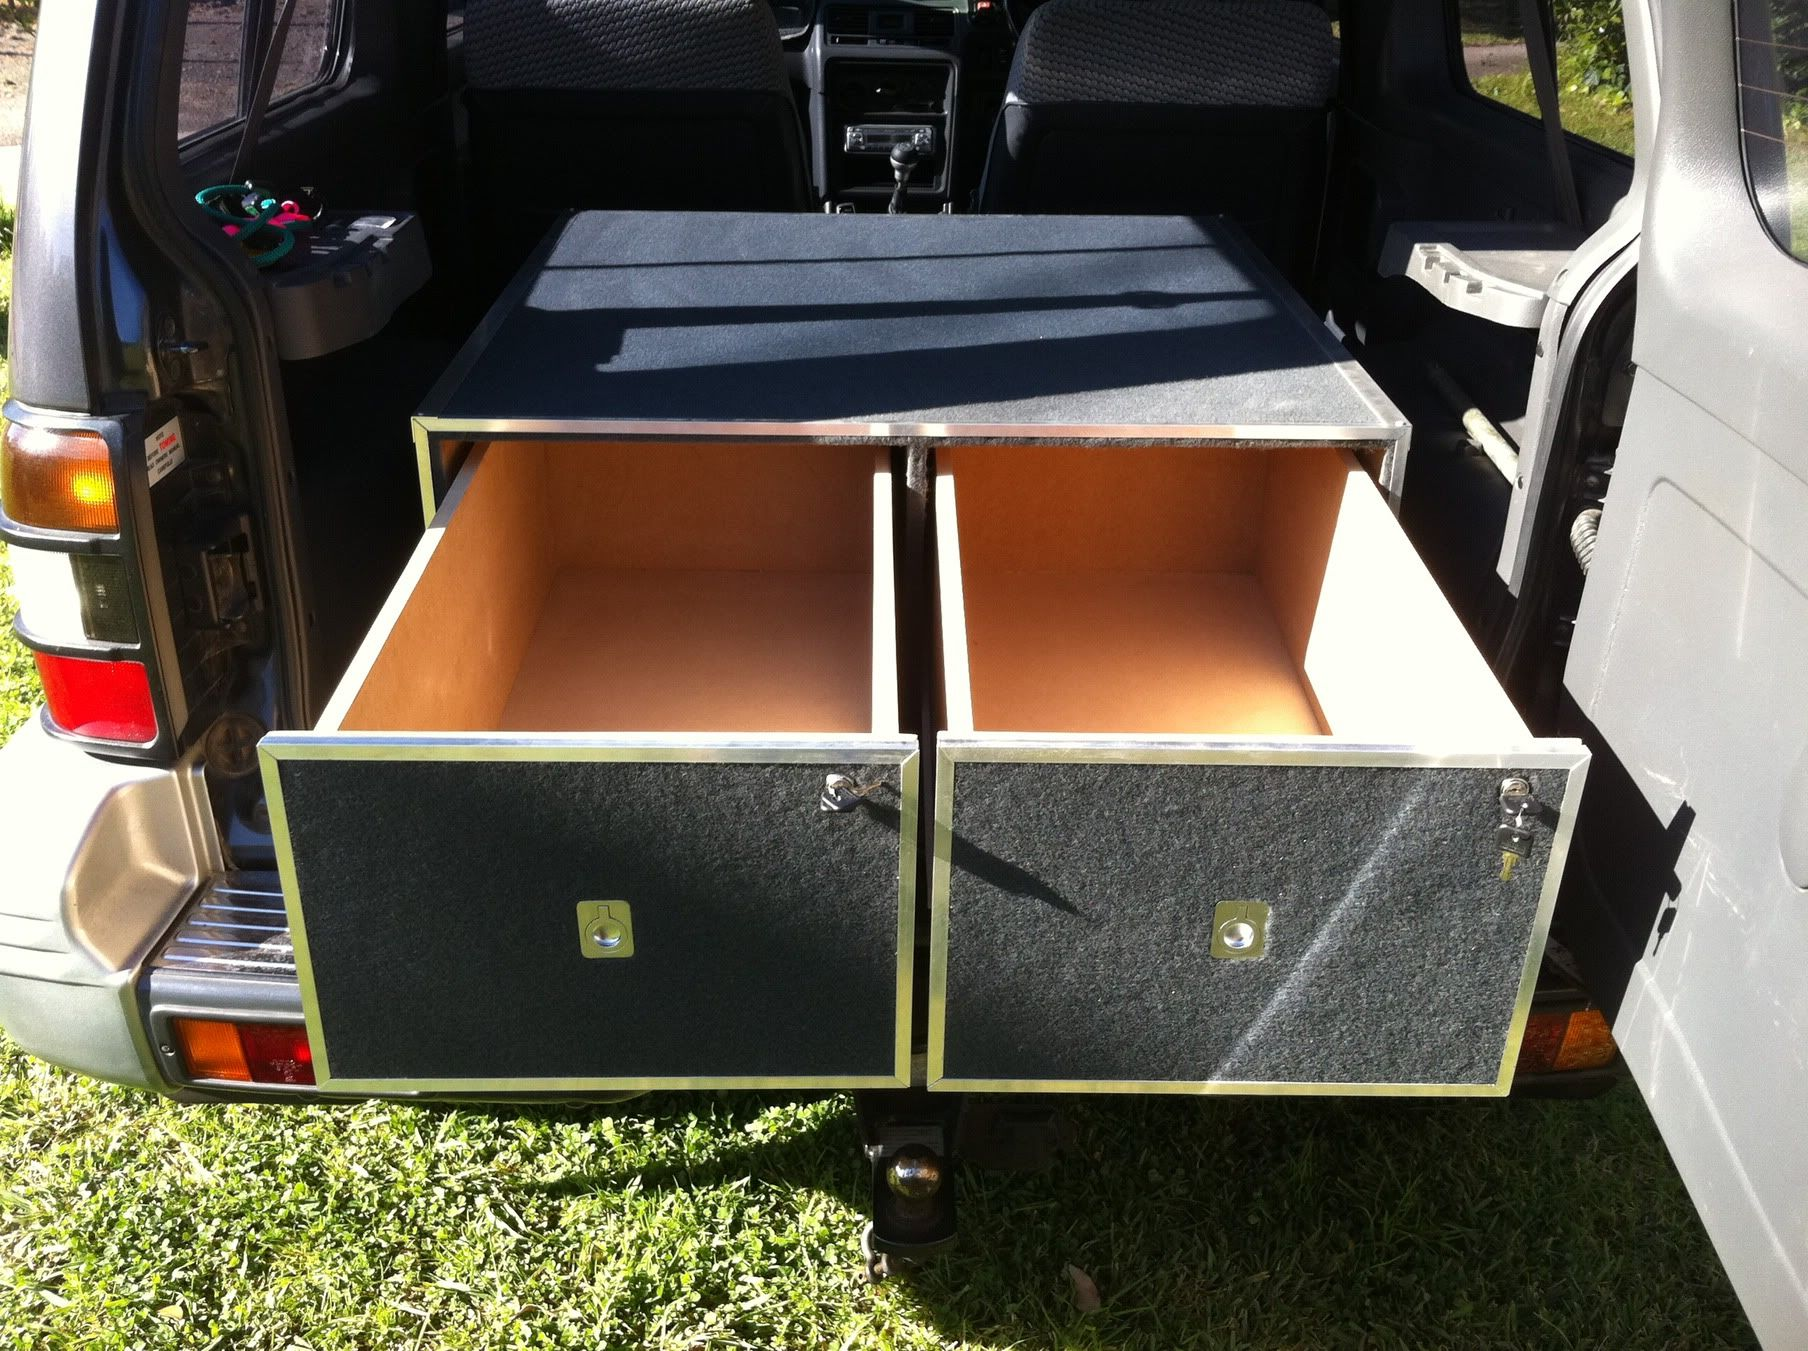 Diy Swb Gen 2 Drawers Pajero 4wd Club Of Victoria Public Forum